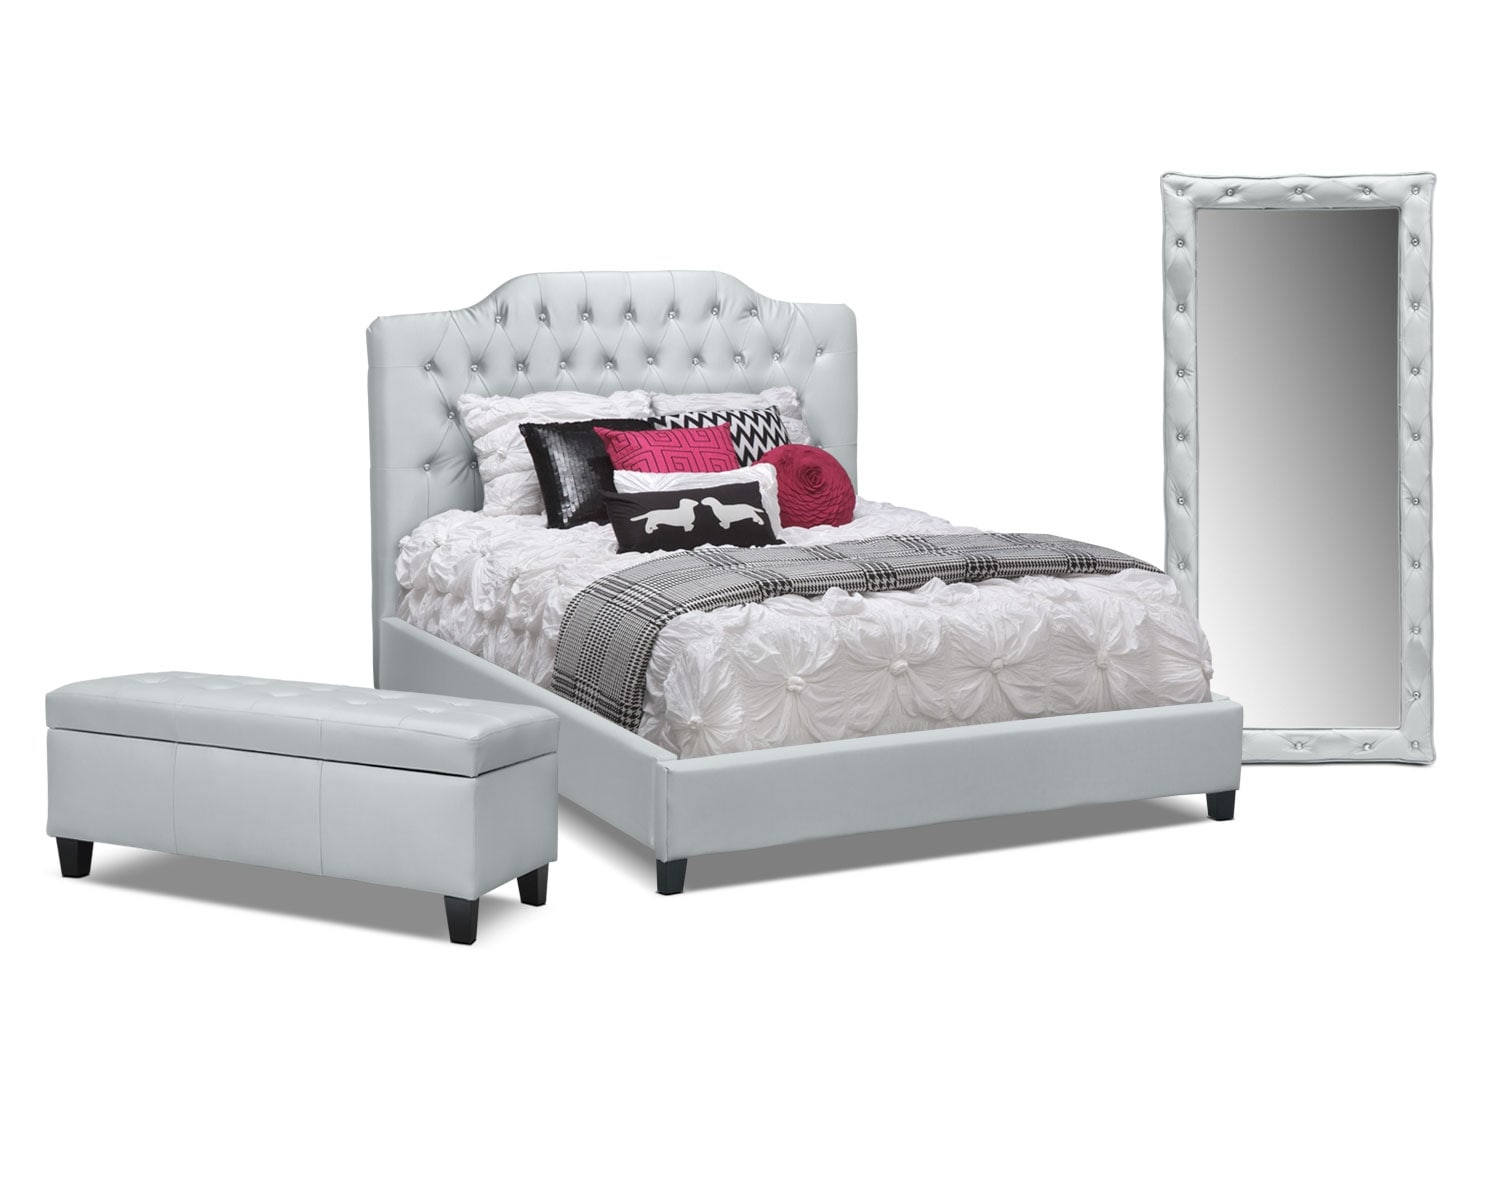 The Valerie Silver Bedroom Collection